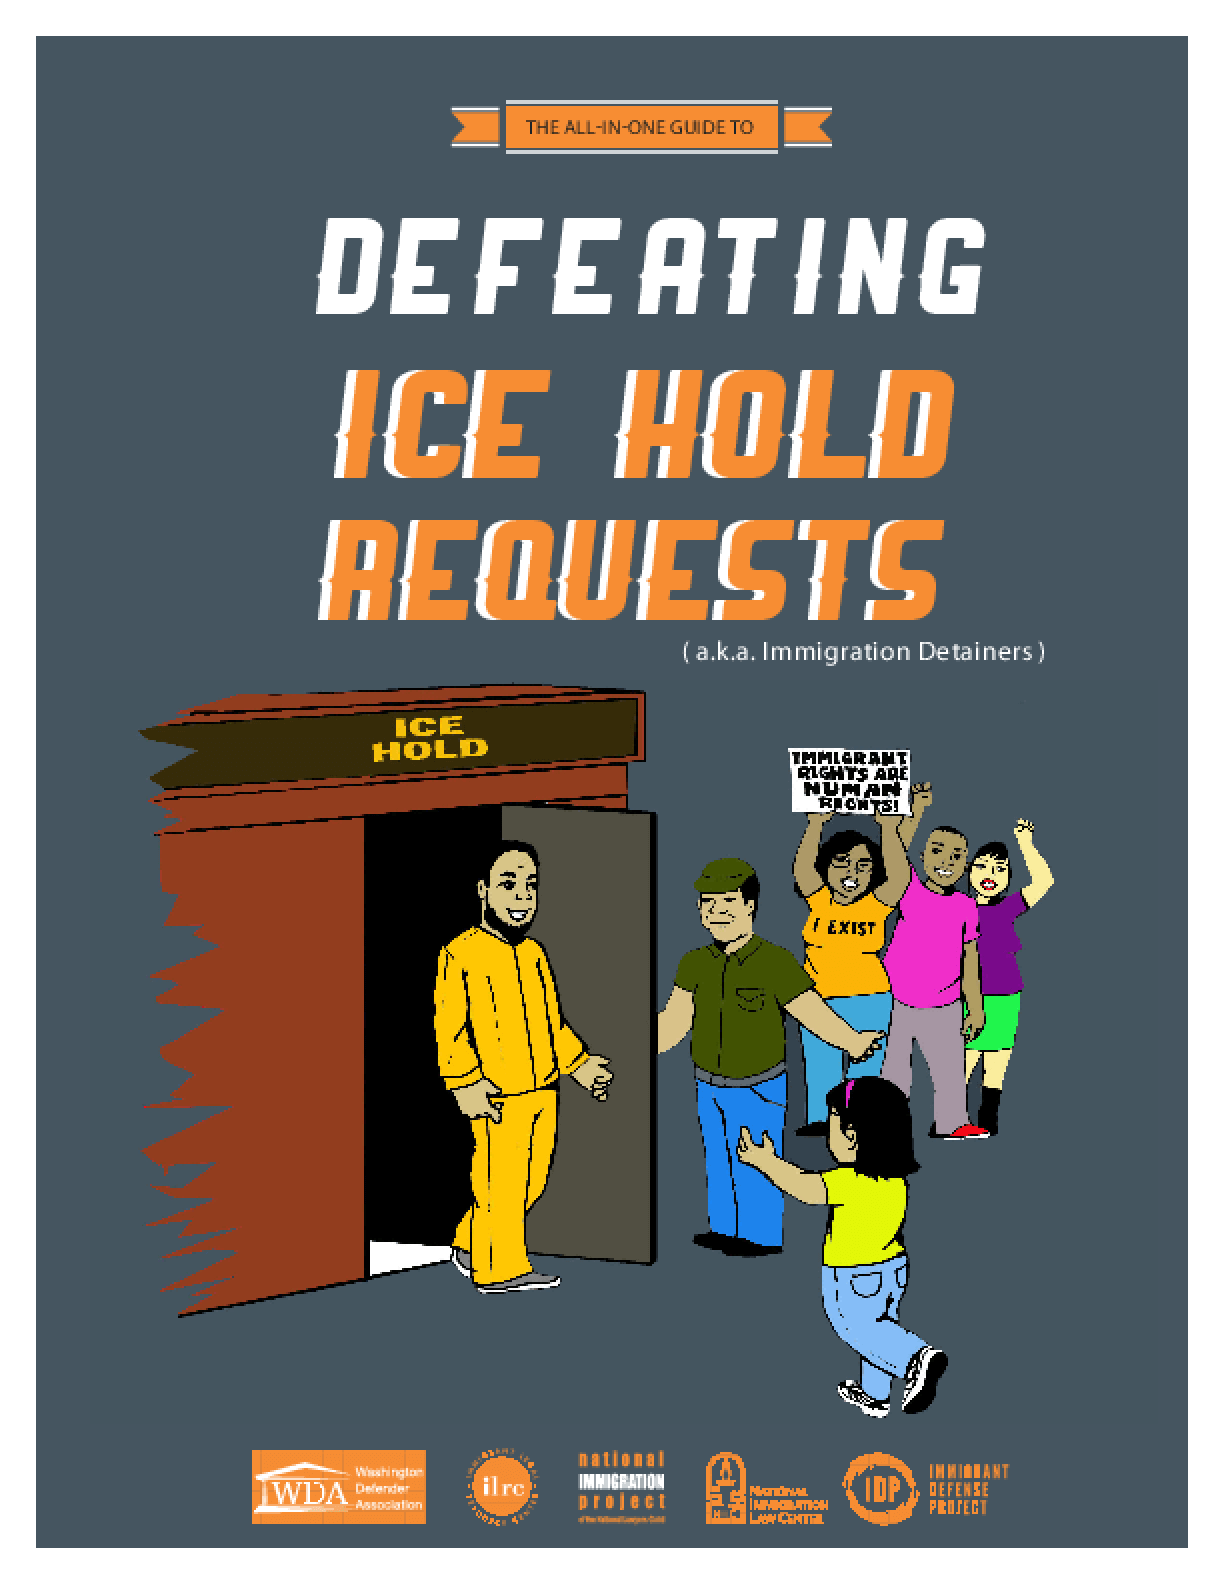 The All-in-One Guide to Defeating Ice Hold Requests (a.k.a.Immigration Detainers)